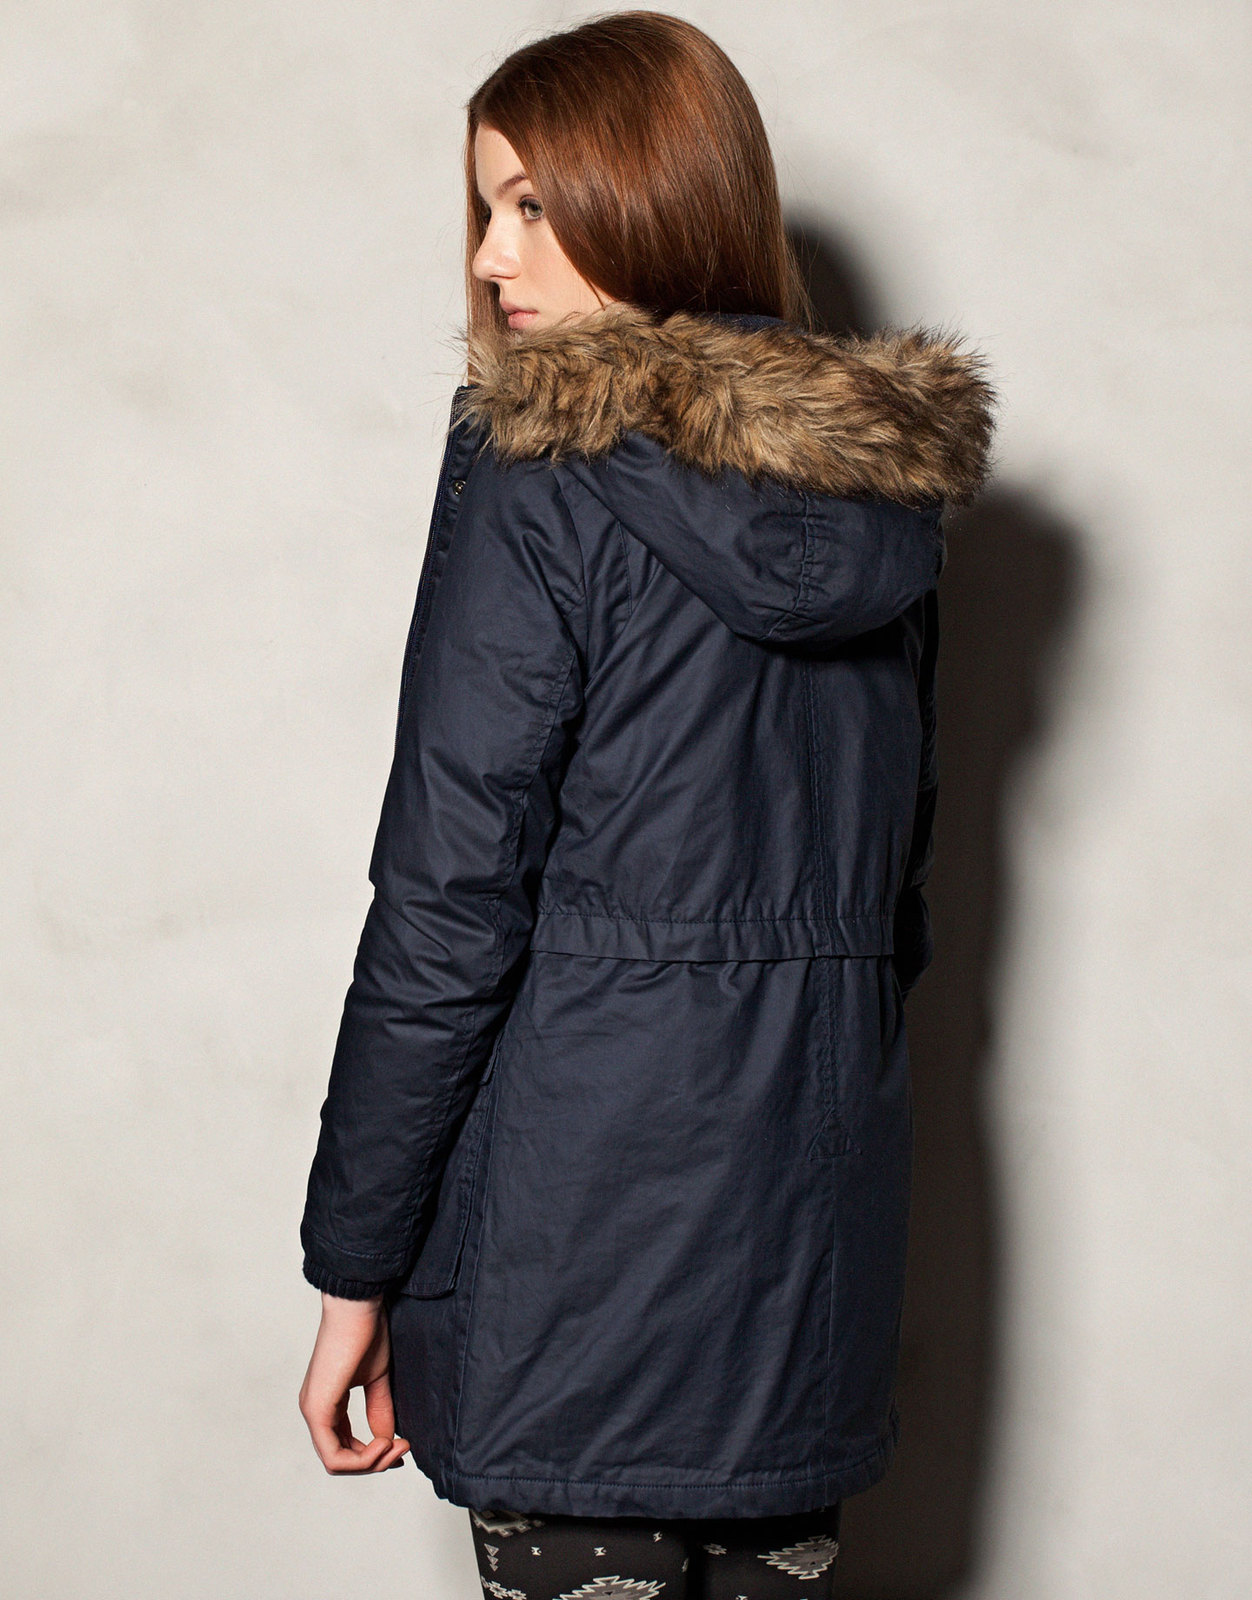 Pull and Bear kapucnis parka 2012 fotója